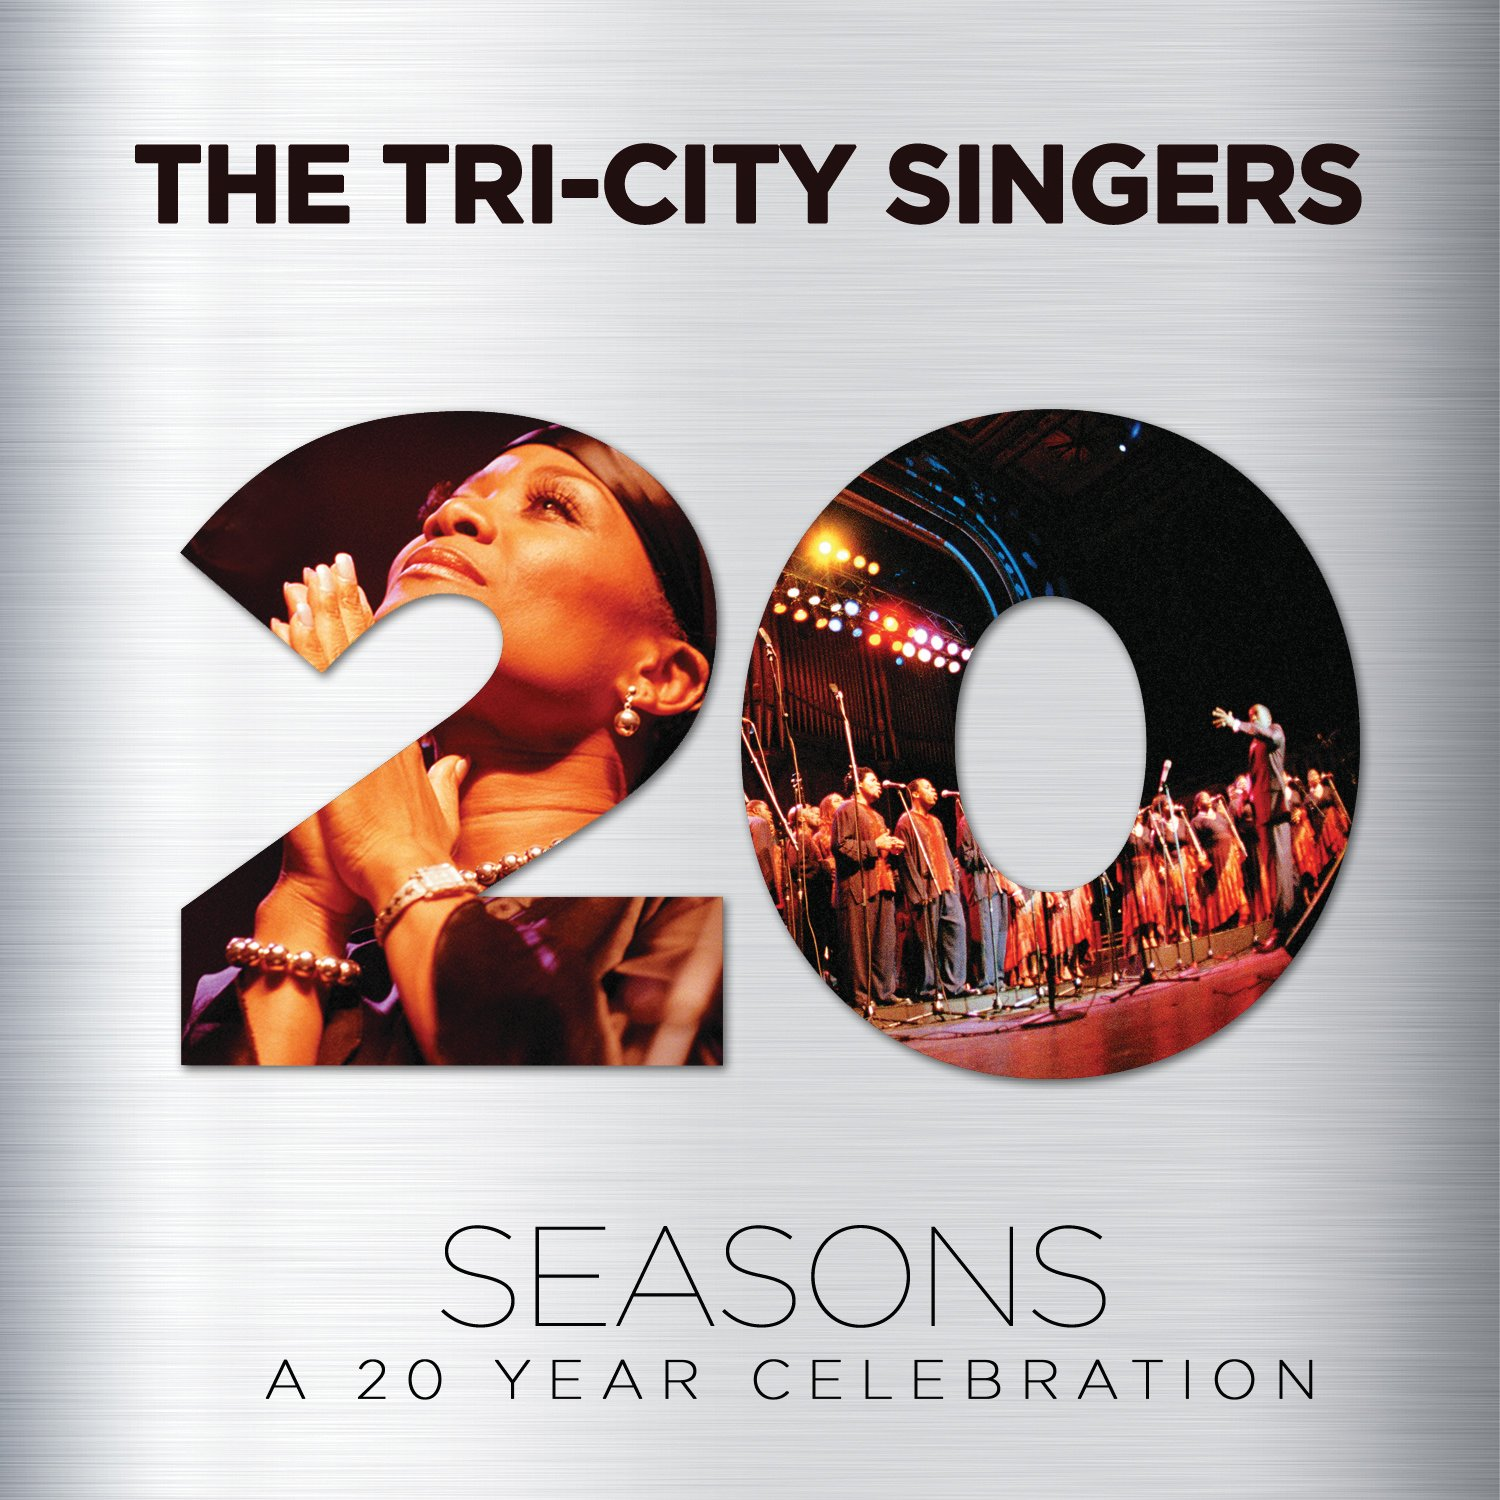 The Tri-City Singers: Seasons - A 20 Year Celebration